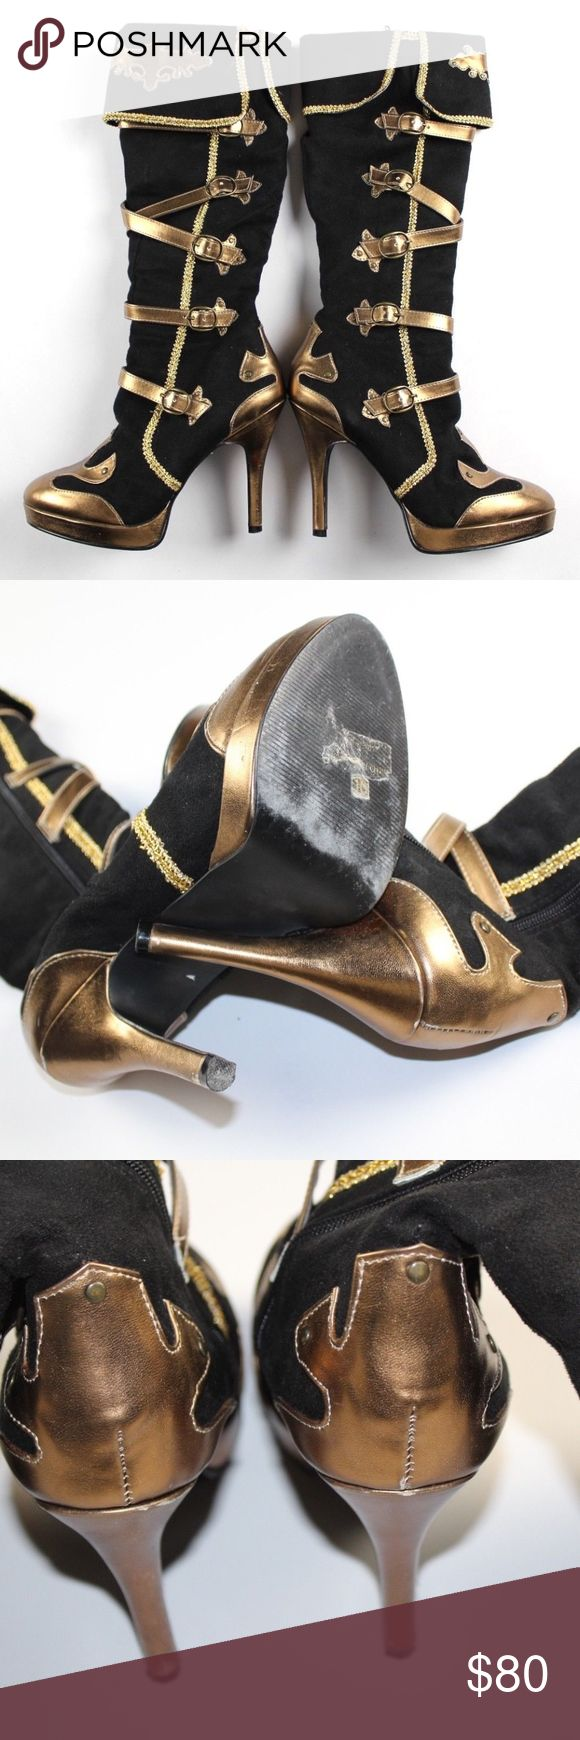 FUNTASMA 10 Medieval Gothic Heel Cosplay Boots Funtasma Size Zip Gothic Medieval Cosplay Heel Boots  Pumps  Comes from a smoke-free household  Black and Gold  Womens 10  Suede  Side zip  Approximately measures 18 inches tall and the heels approximately measure 3 inches  Check out my other items in my store! Funtasma Shoes Heeled Boots